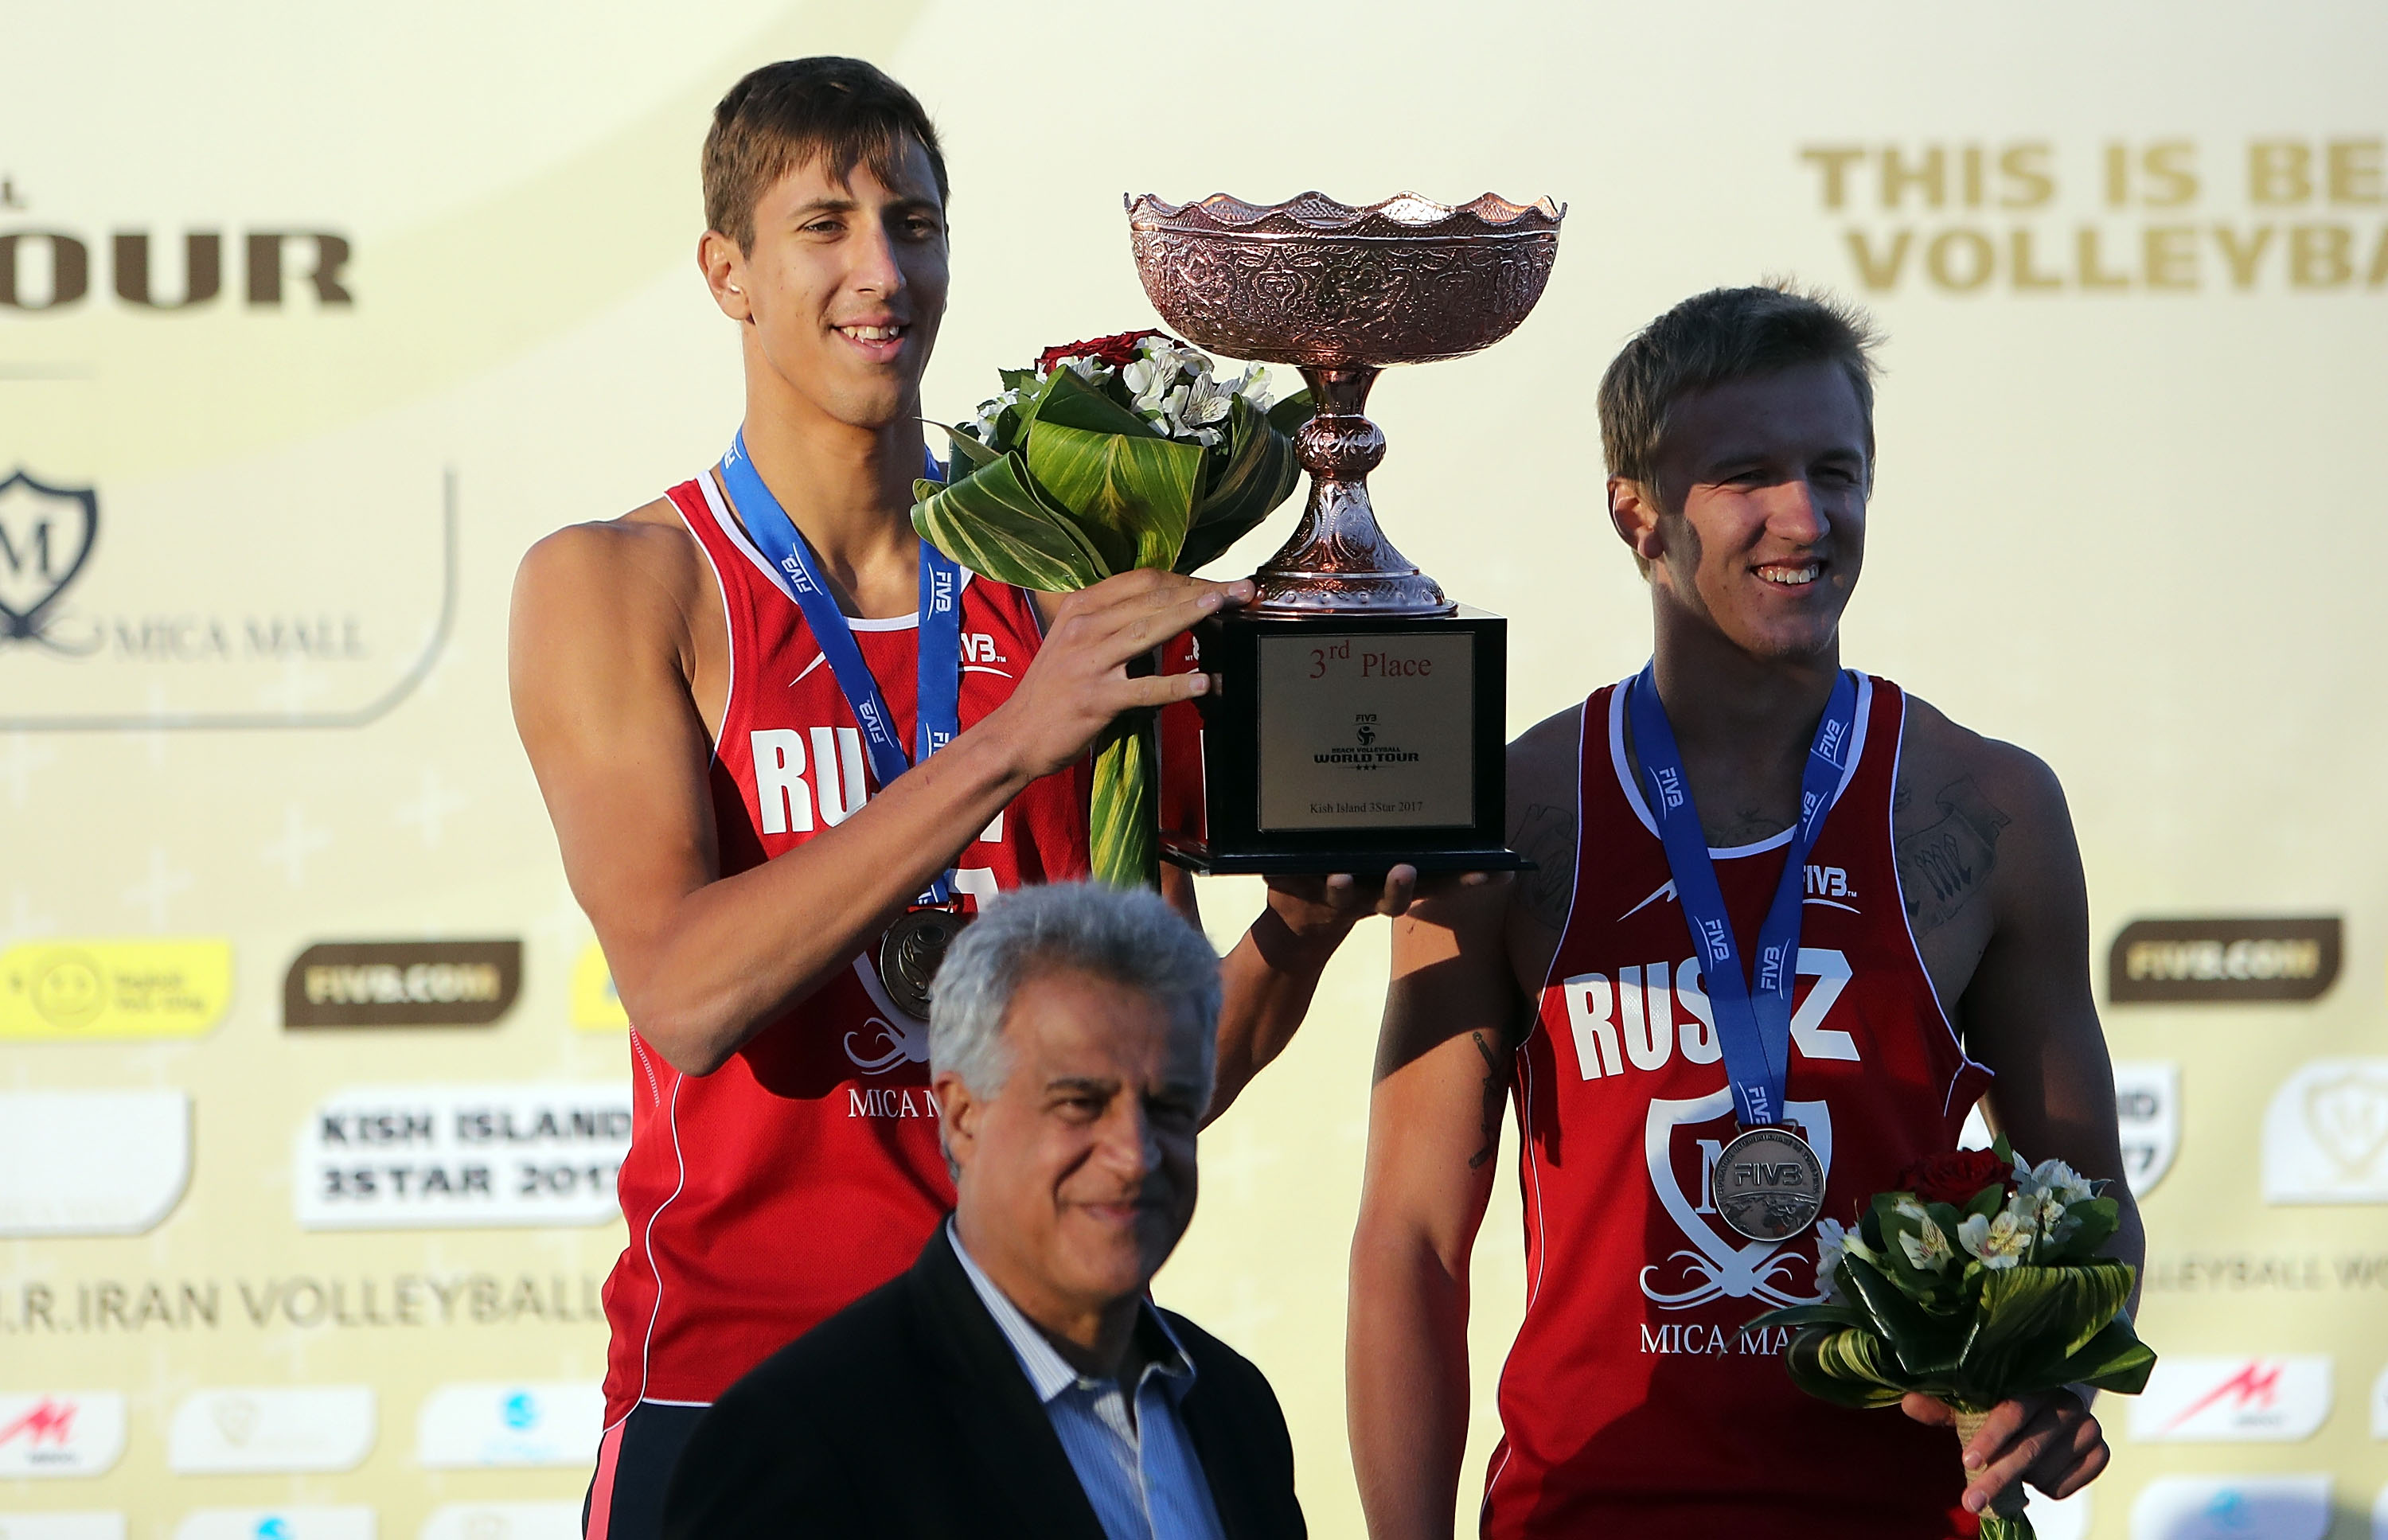 FIVB Beach Volleyball World Tour Kish Island 3-Star 2017